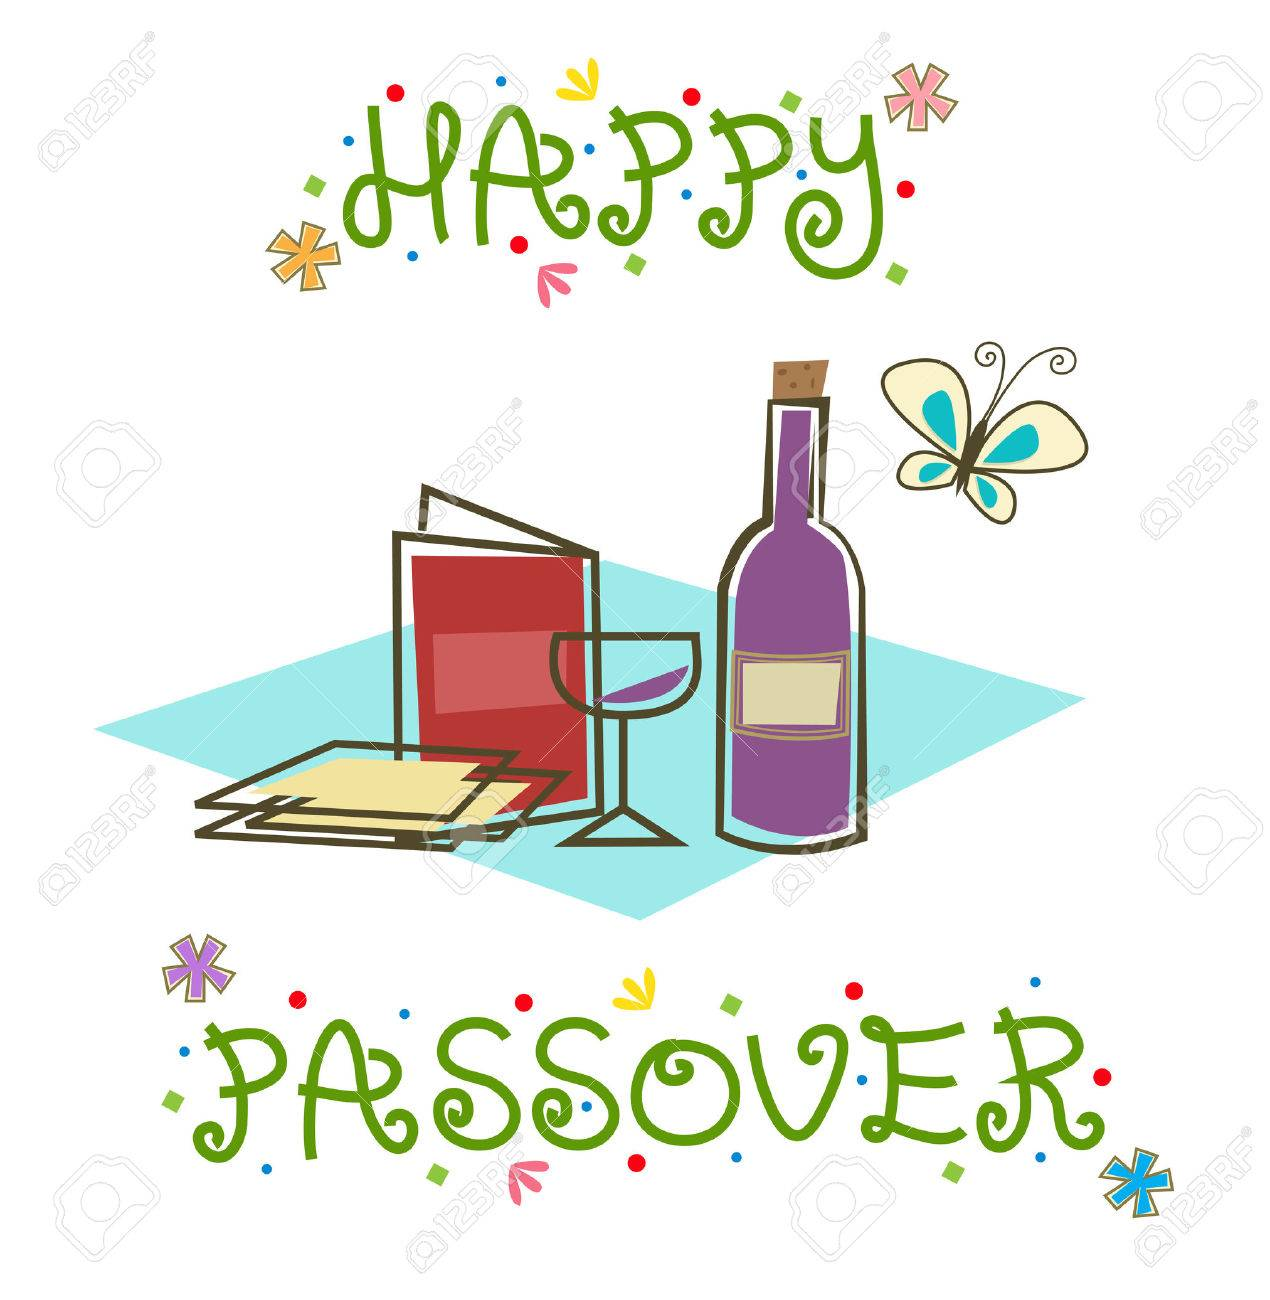 happy passover sign - stylized passover sign with passover seder